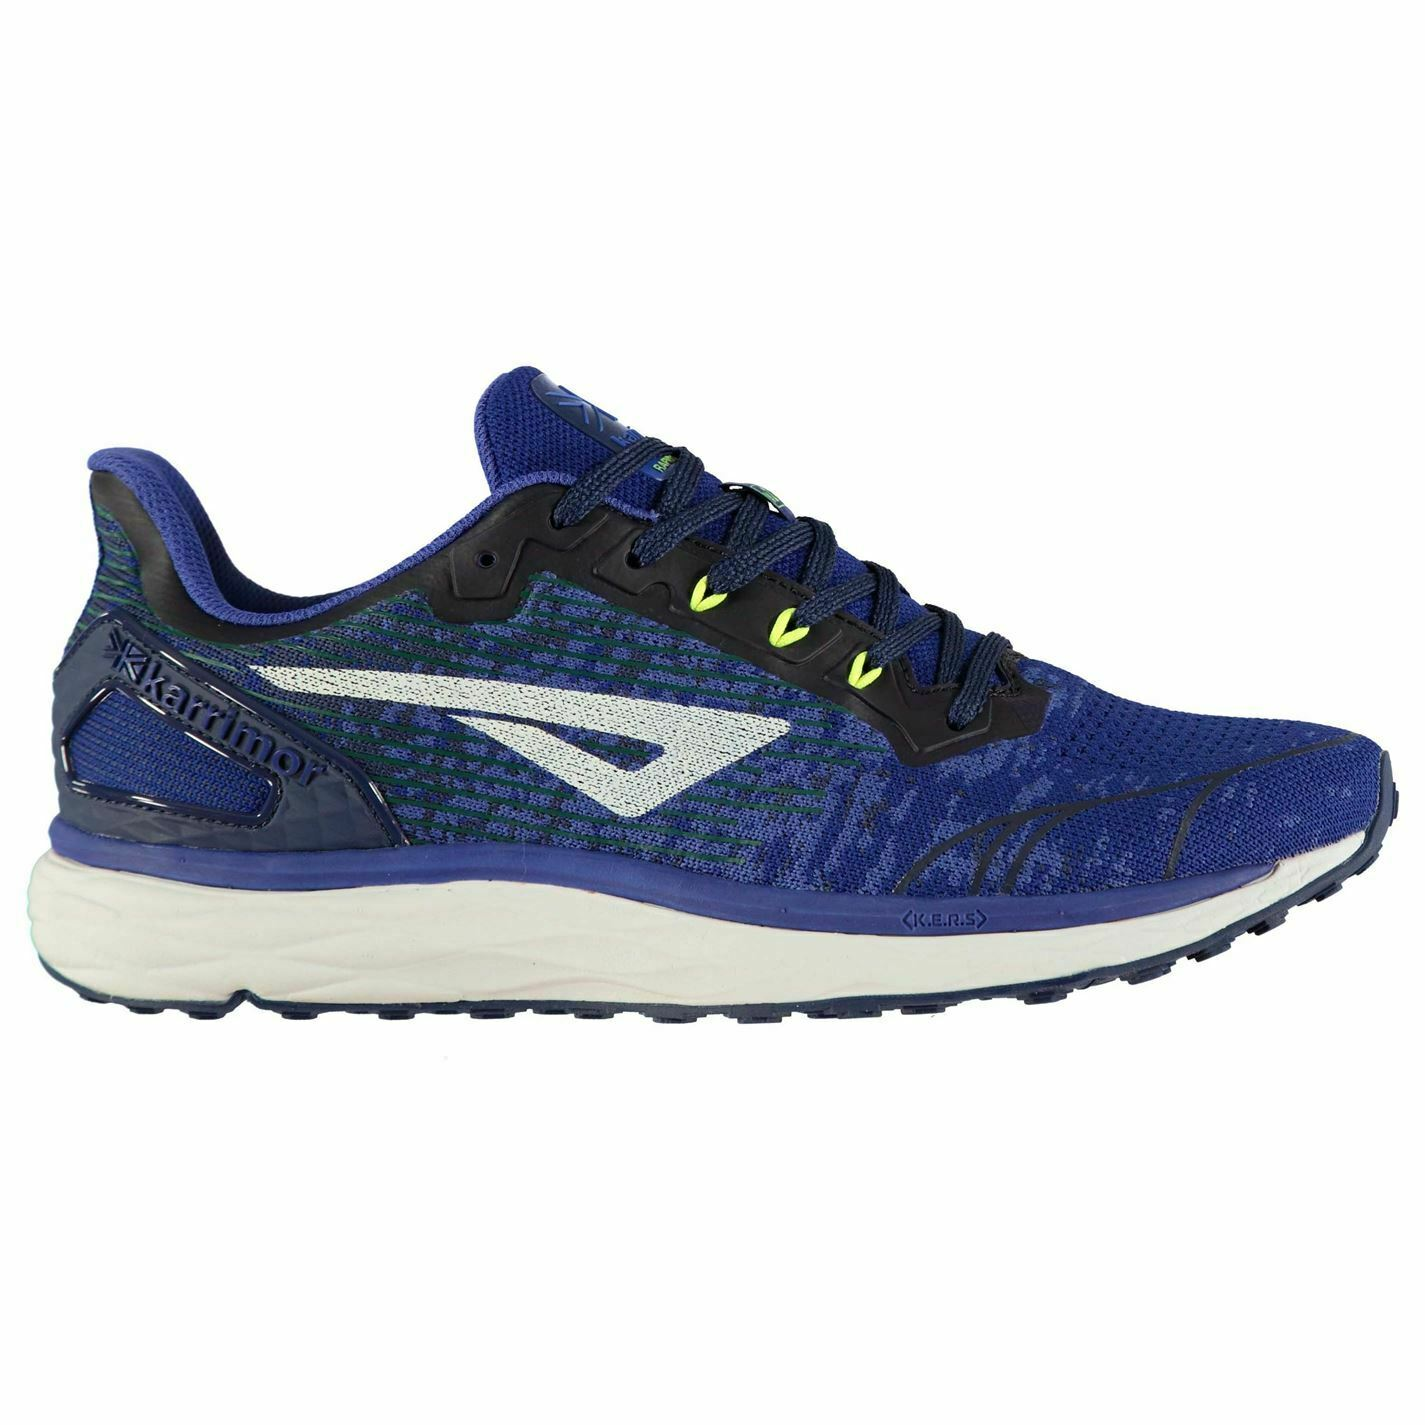 Karrimor Rapid Support Turnschuhe Mens Gents Road Running schuhe Laces Fastened